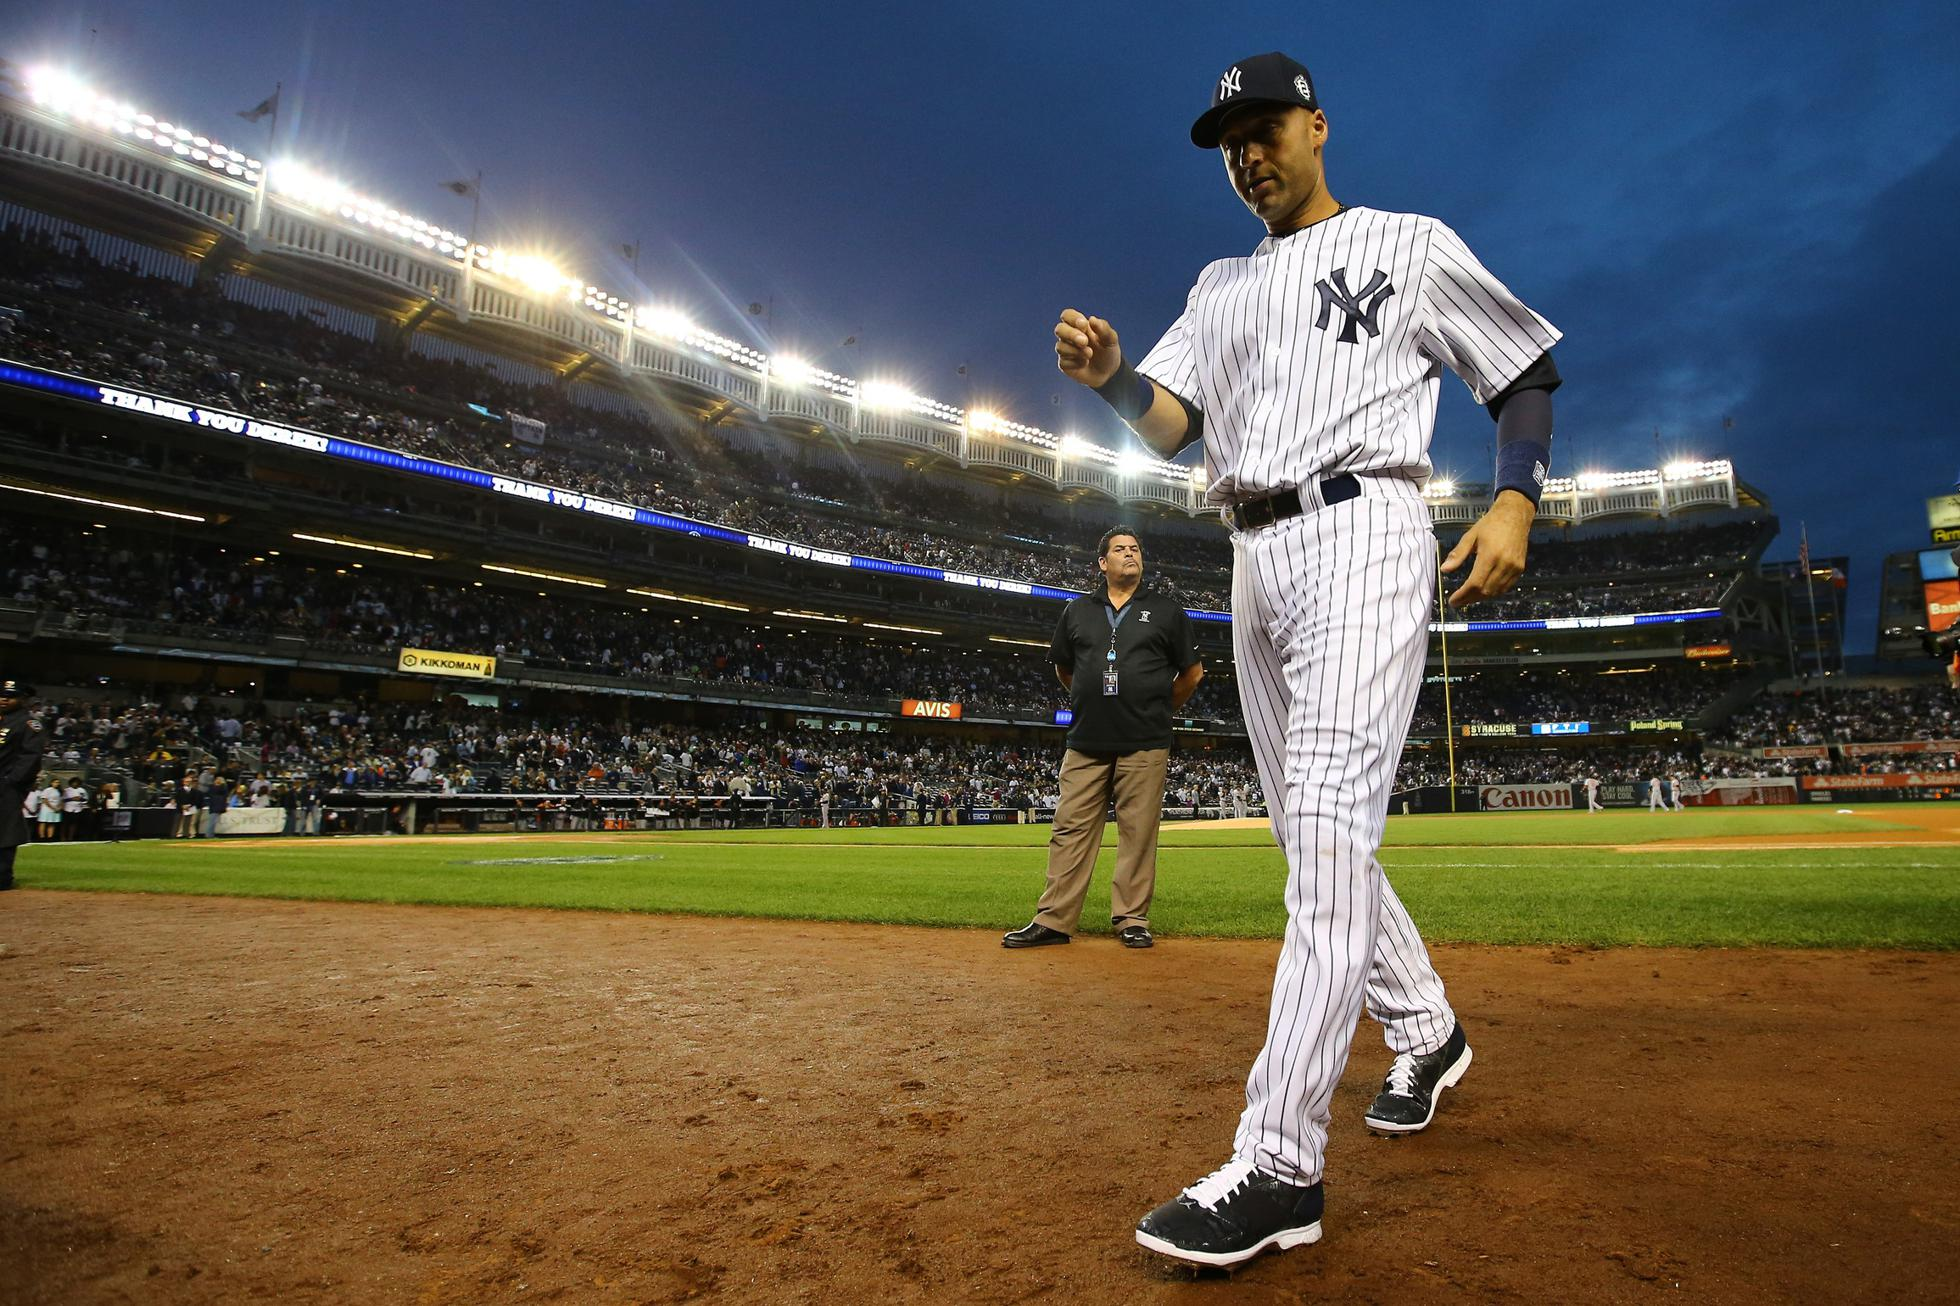 Derek Jeter is best known as the Hall of Fame shortstop of the New York Yankees.